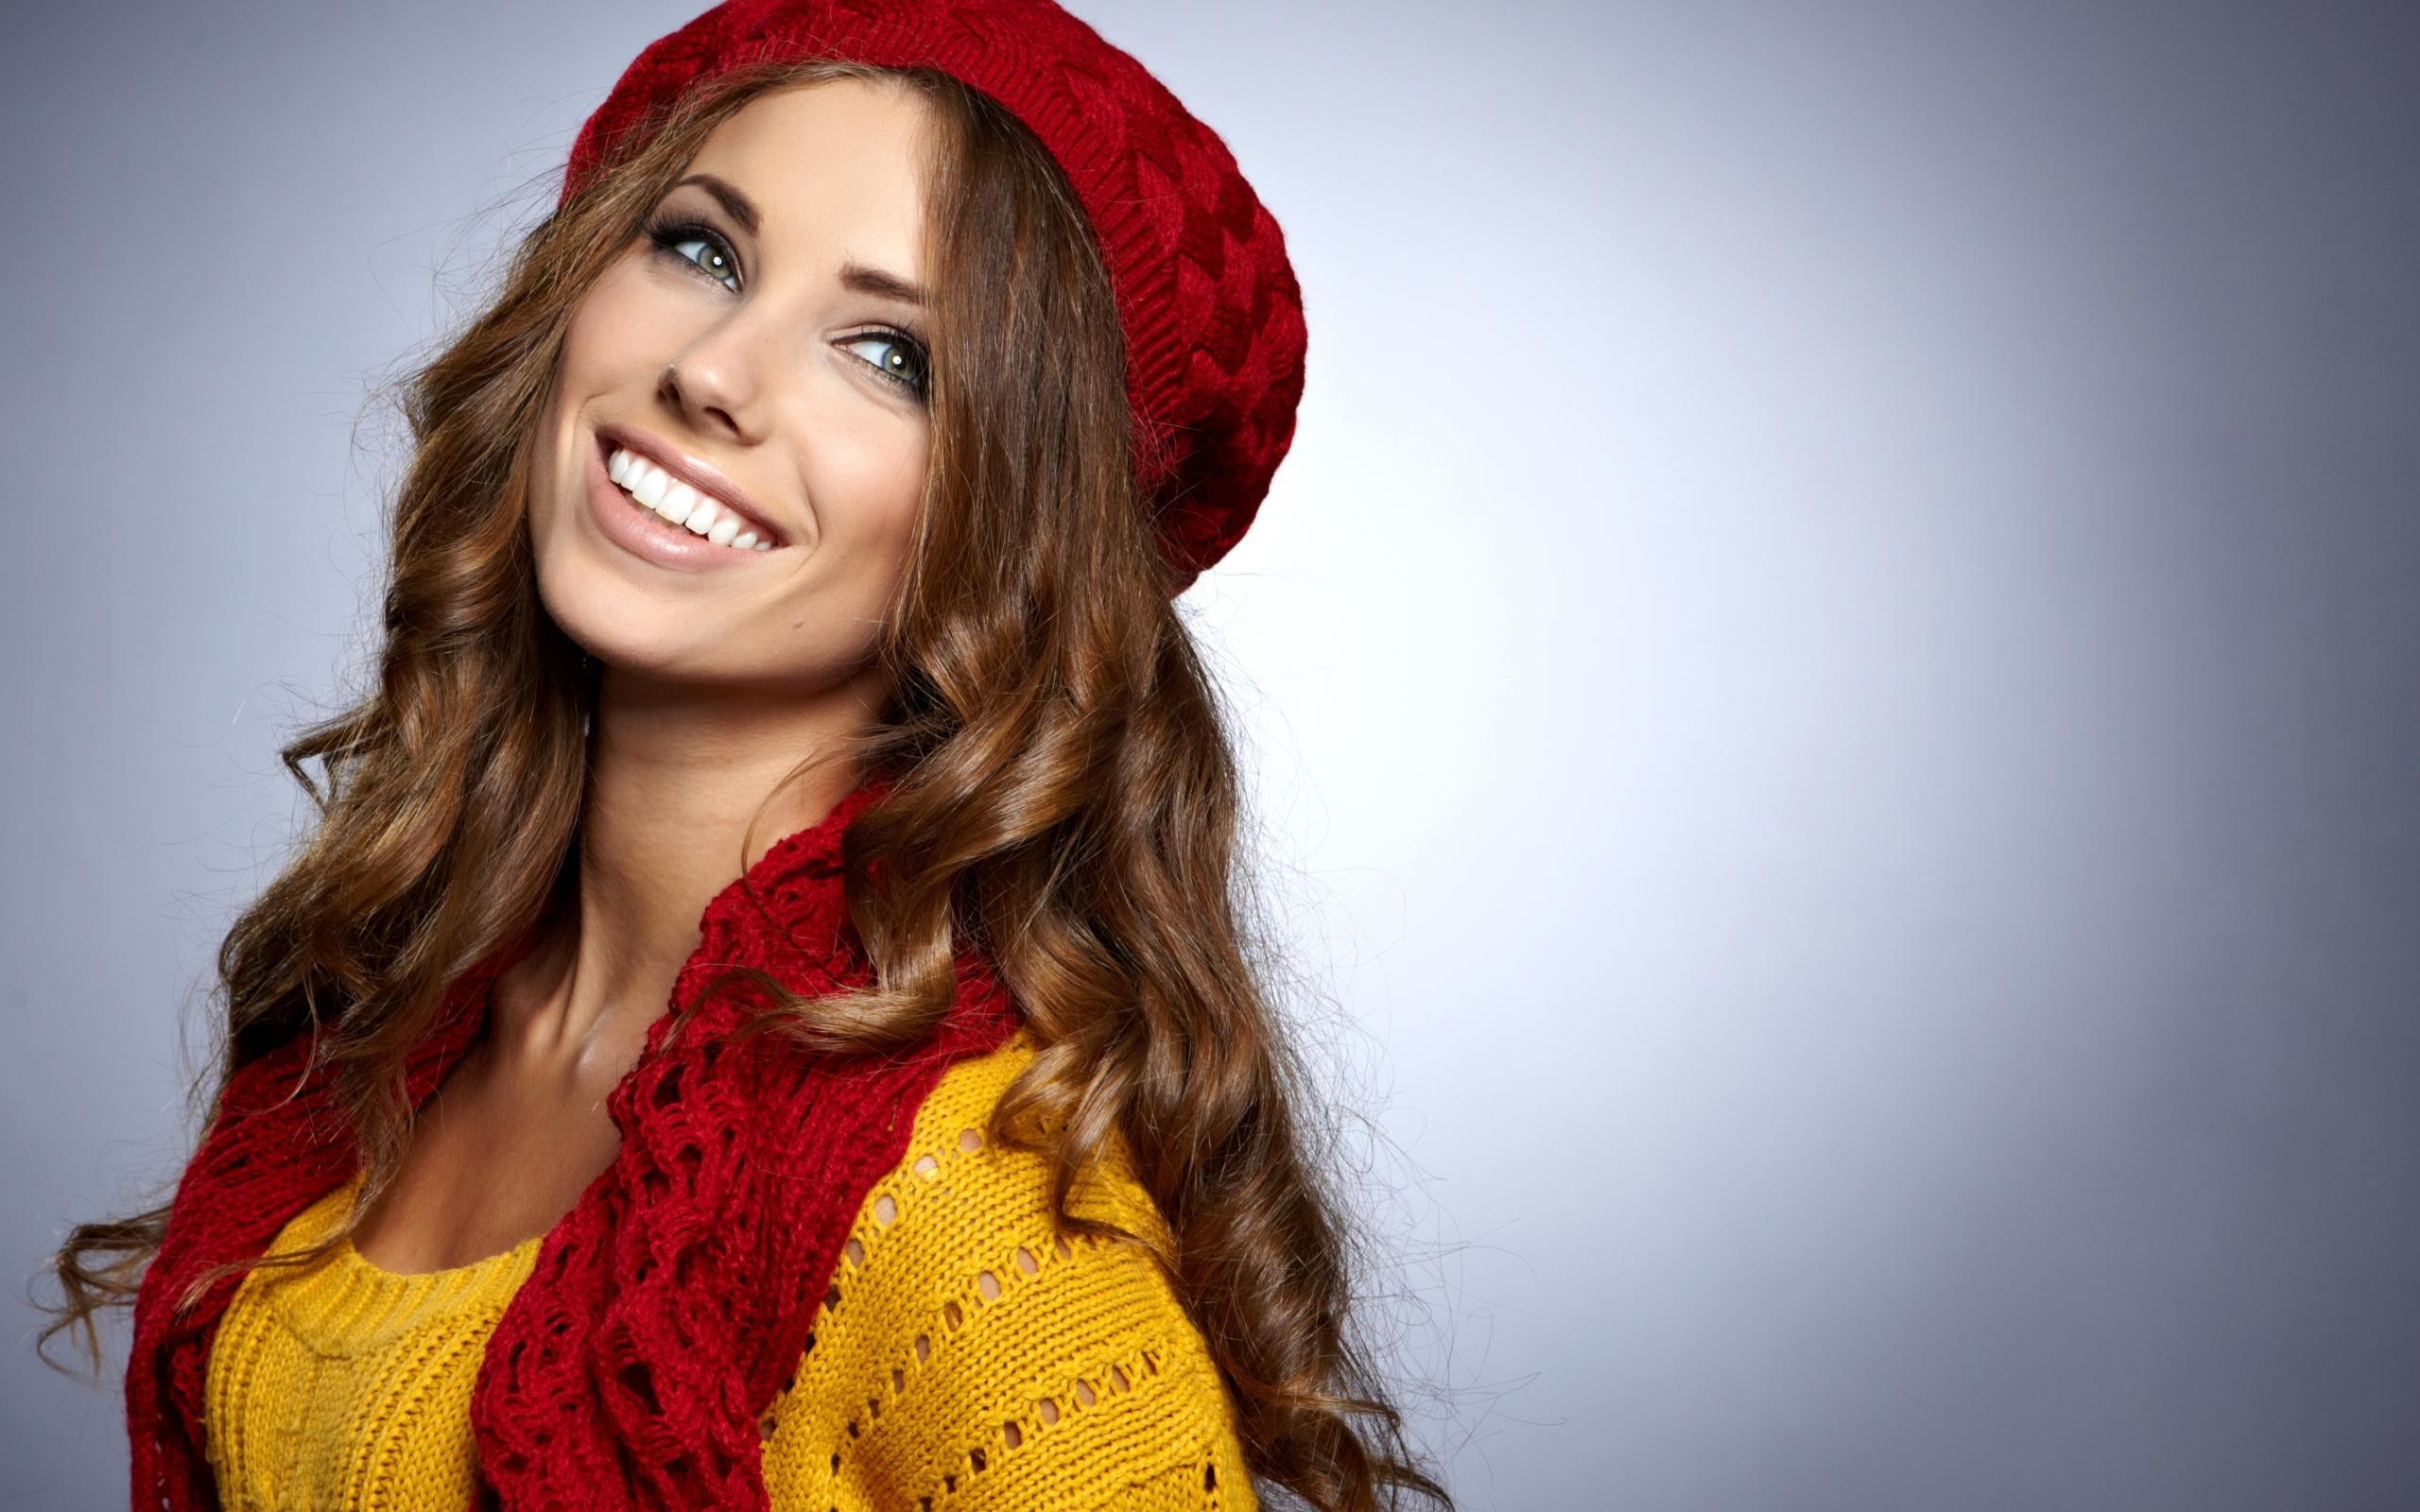 Beautiful Smile Wallpaper 68 Images: Beautiful Full HD Wallpaper And Background Image